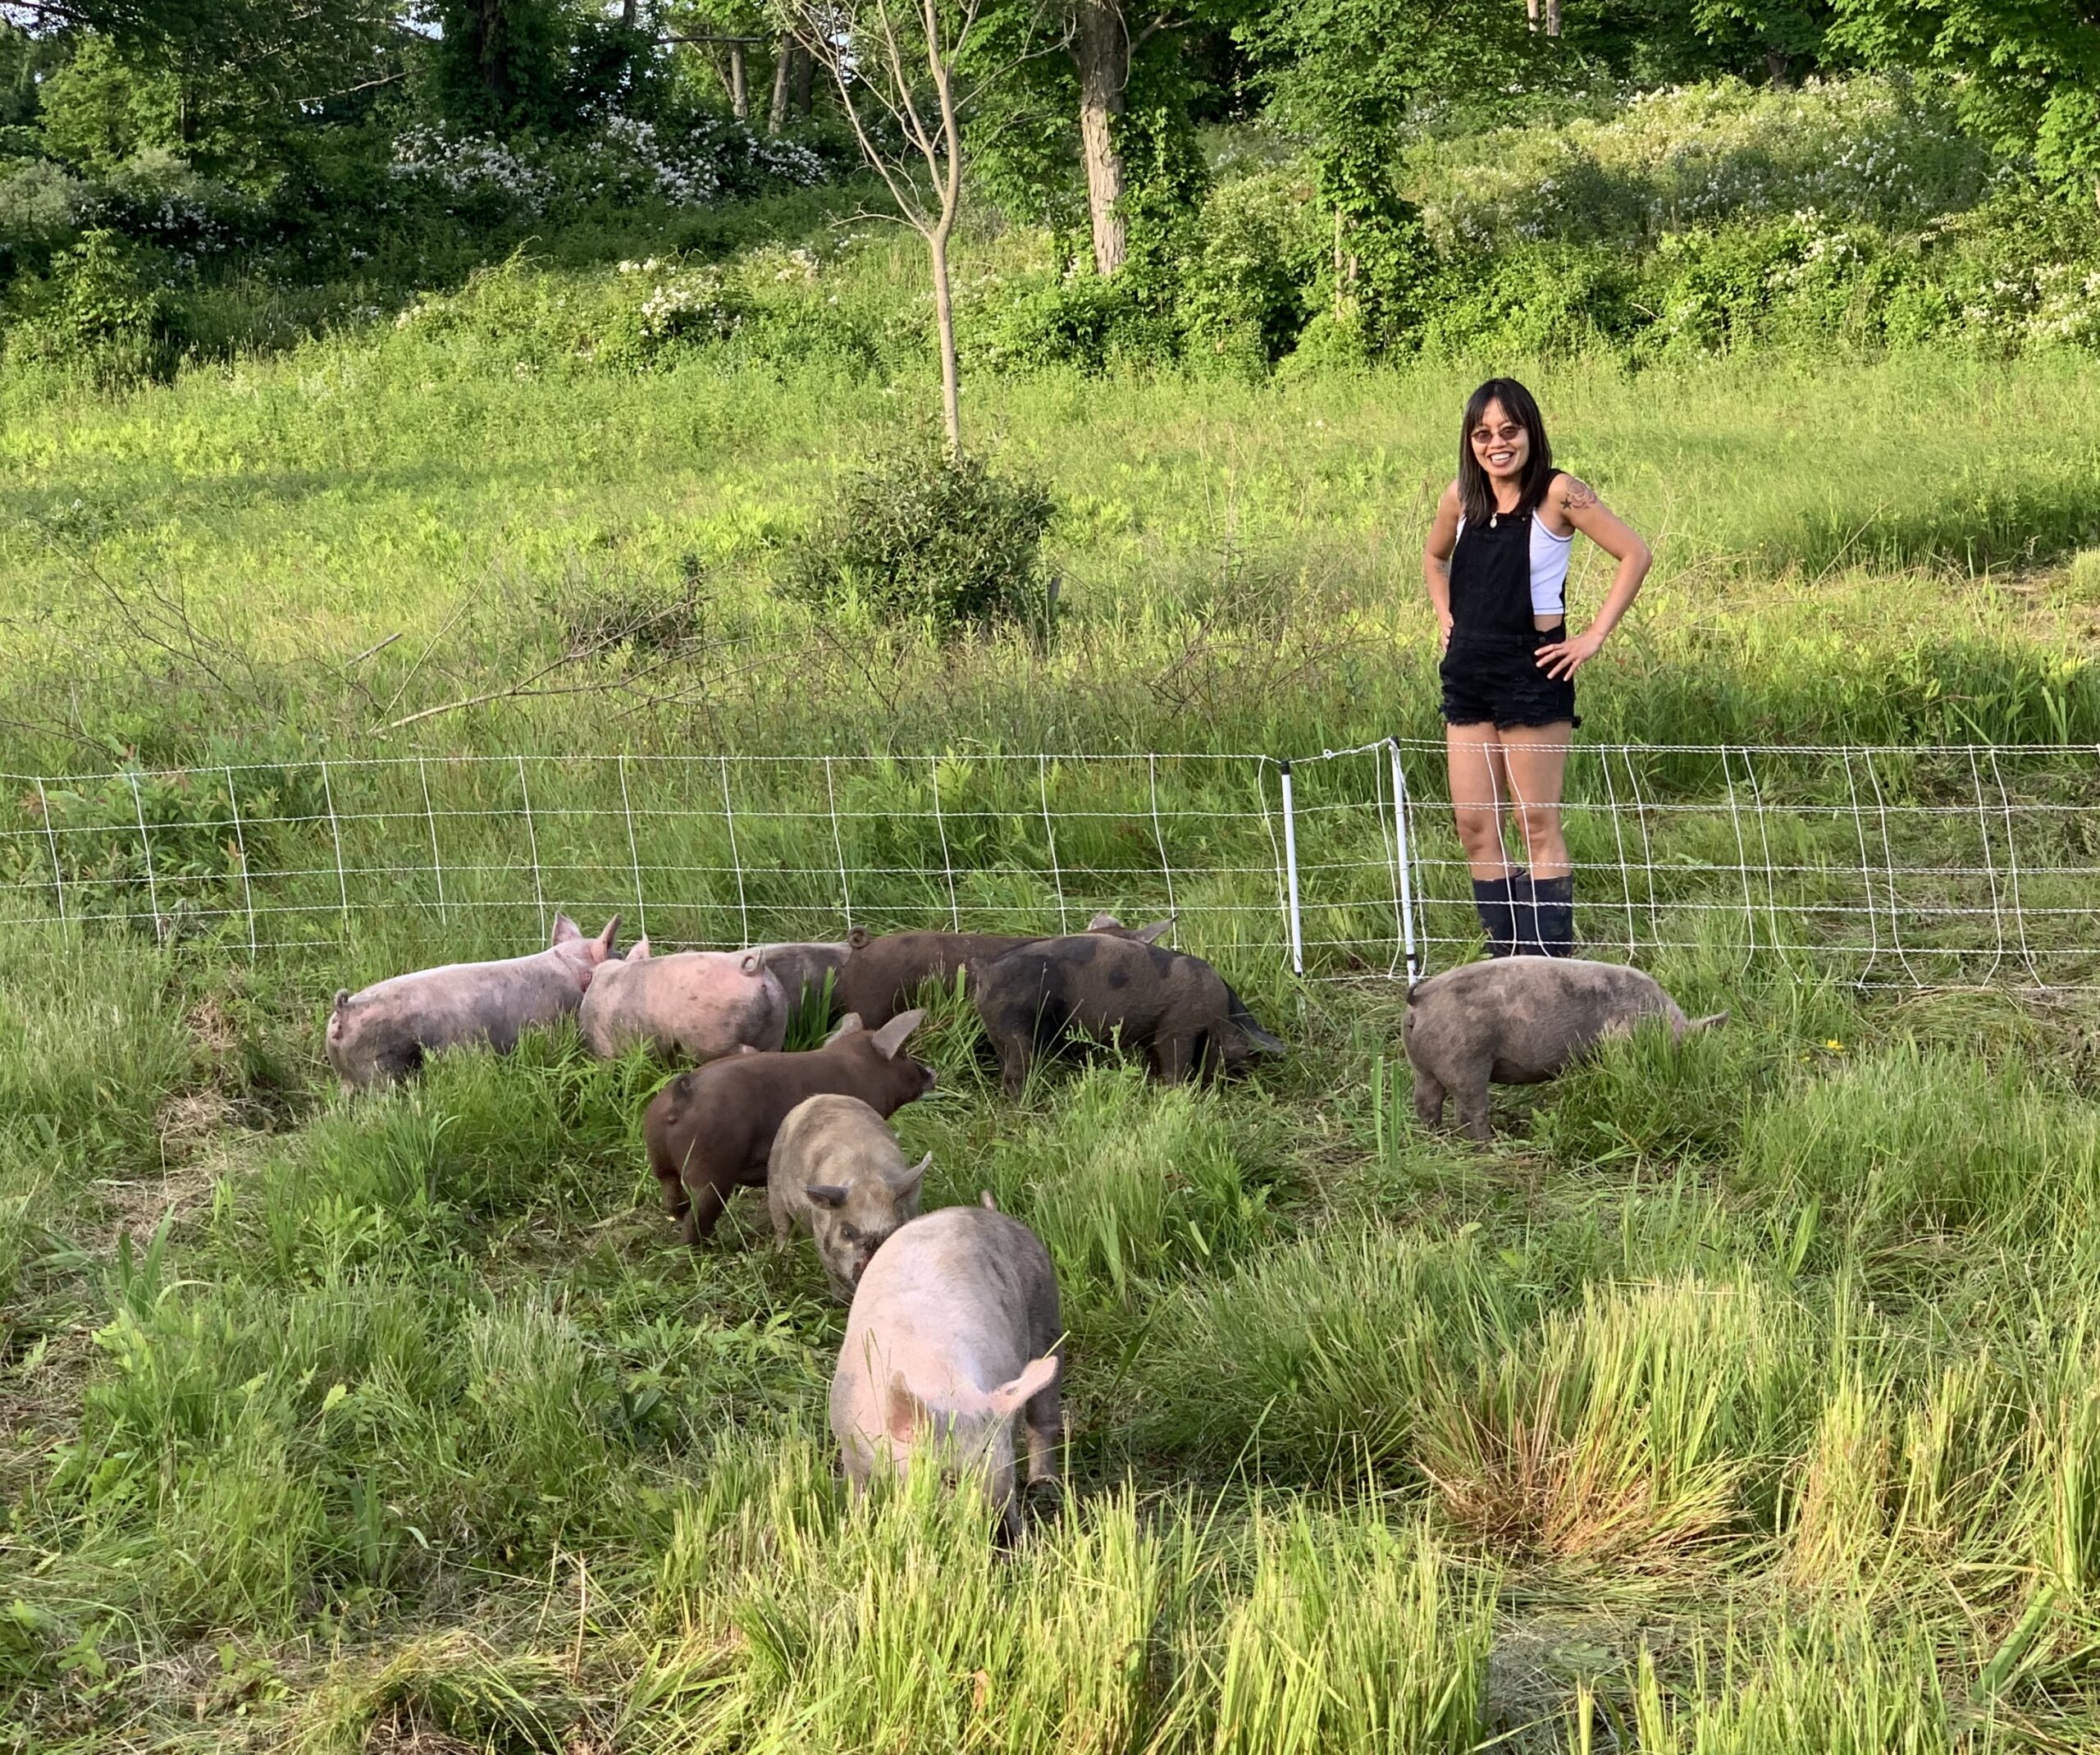 farmer anh watches over her flock